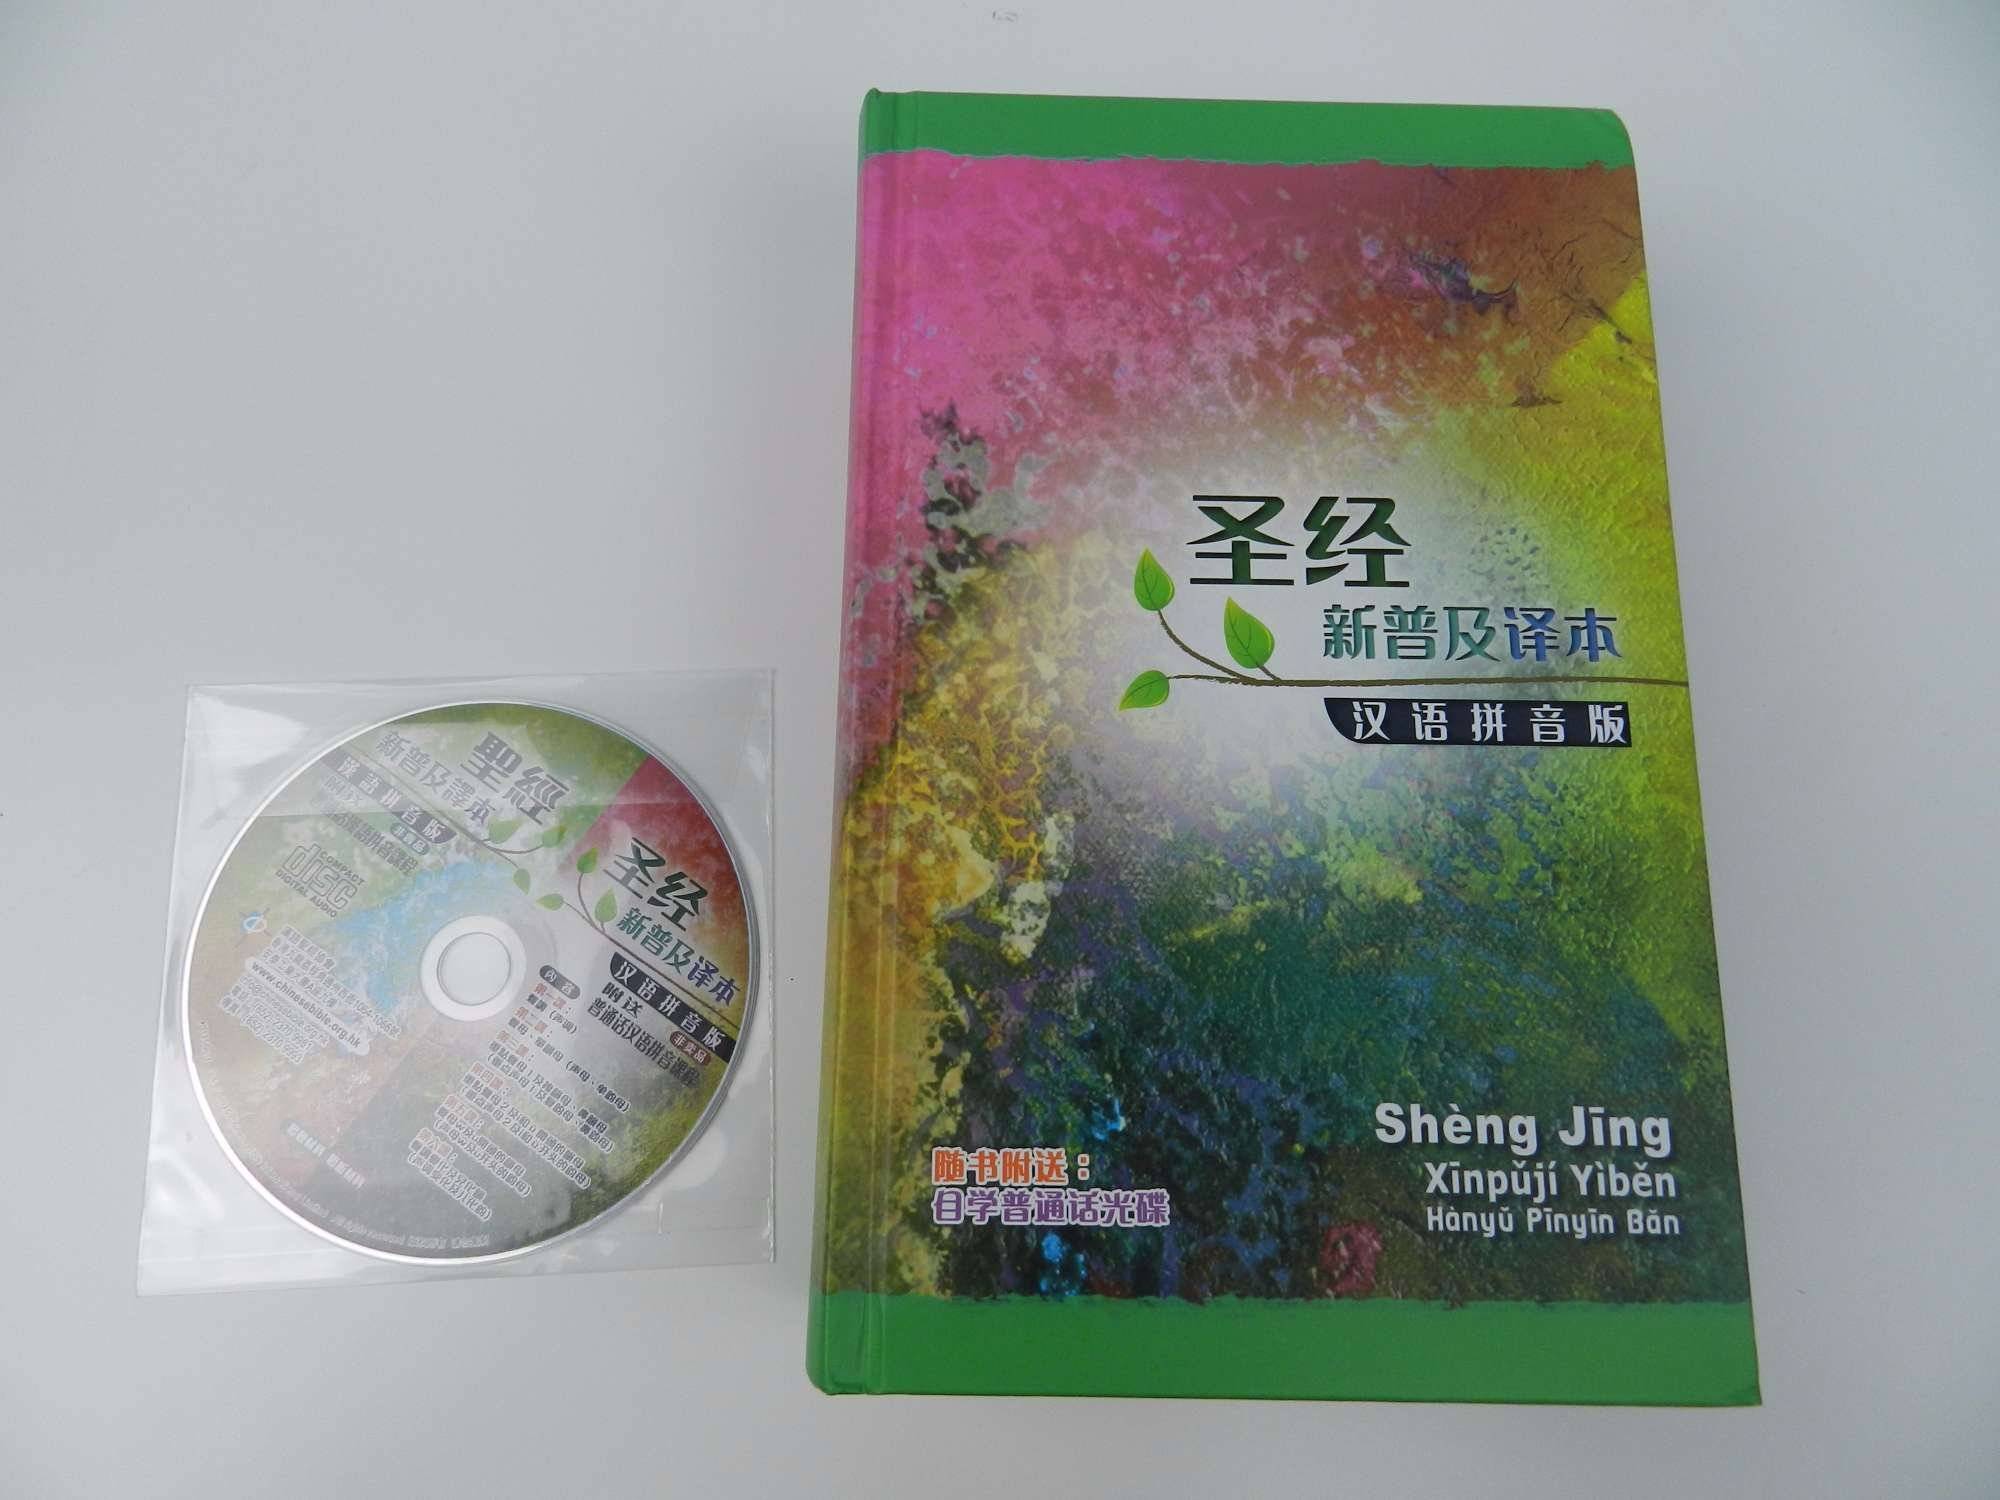 Hardcover Chinese New Living Translation CNLT Bible with Pinyin / Mandarin Pinyin Course CD Included / Simplified Chinese / 精裝圣经 简体 新普及译本 汉语拼音版 PDF